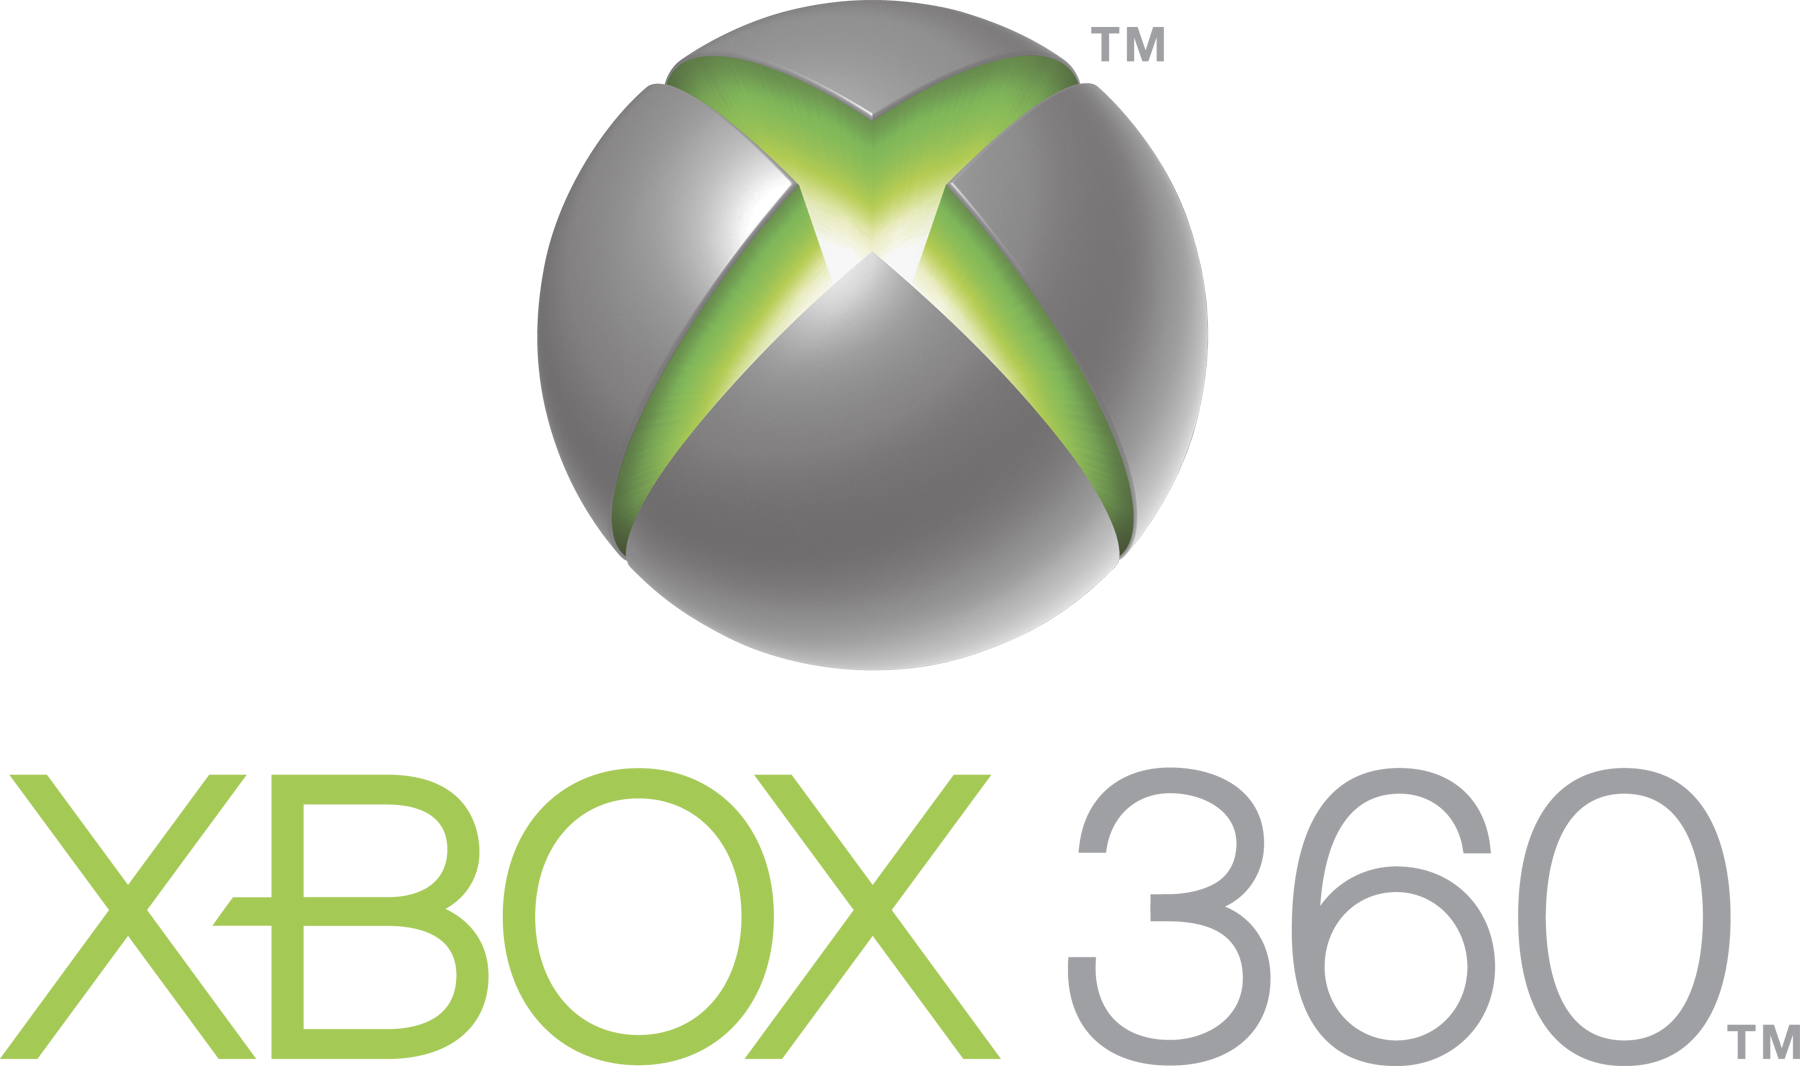 image xbox360 logo png movie tv and video game wiki fandom rh movie tv and video game wikia com Xbox 360 Logo Wallpaper Monster Energy Xbox 360 Logo